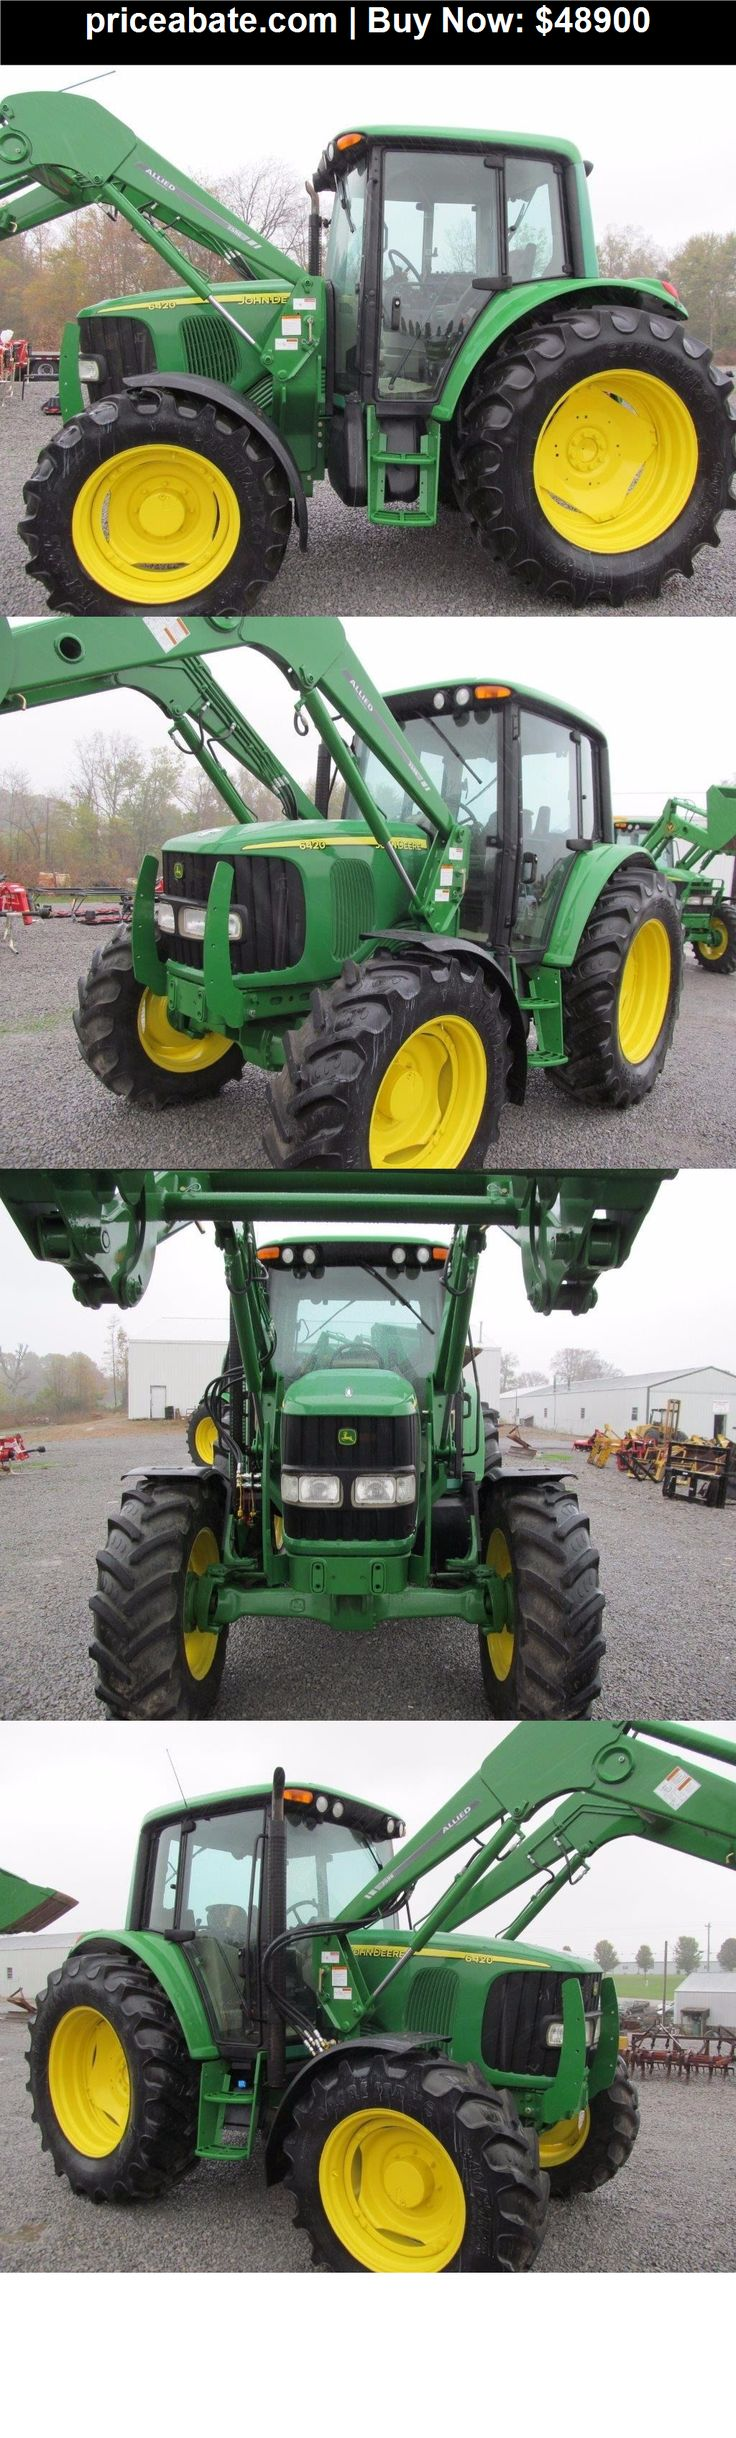 Heavy-Equipments: John Deere 6420 Diesel Tractor 4 X 4 With Cab & Allied Loader - BUY IT NOW ONLY $48900